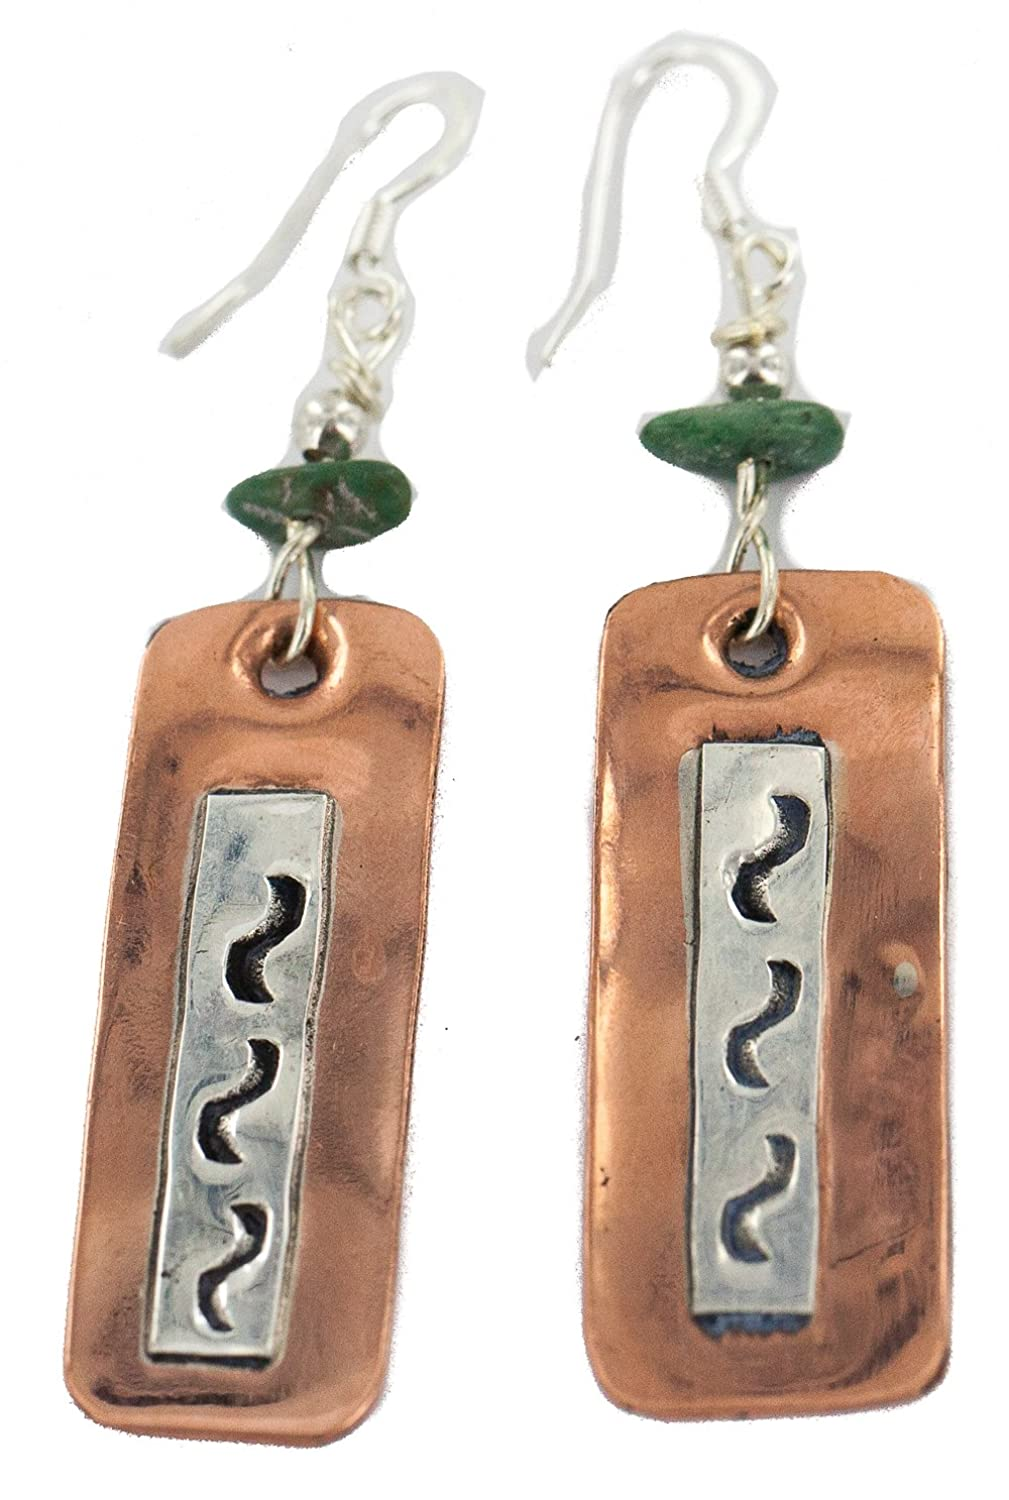 $300 Retail Tag Authentic Silver Hooks Made by Charlene Little Handmade Navajo Natural Turquoise Native American Pure Copper Dangle Earrings